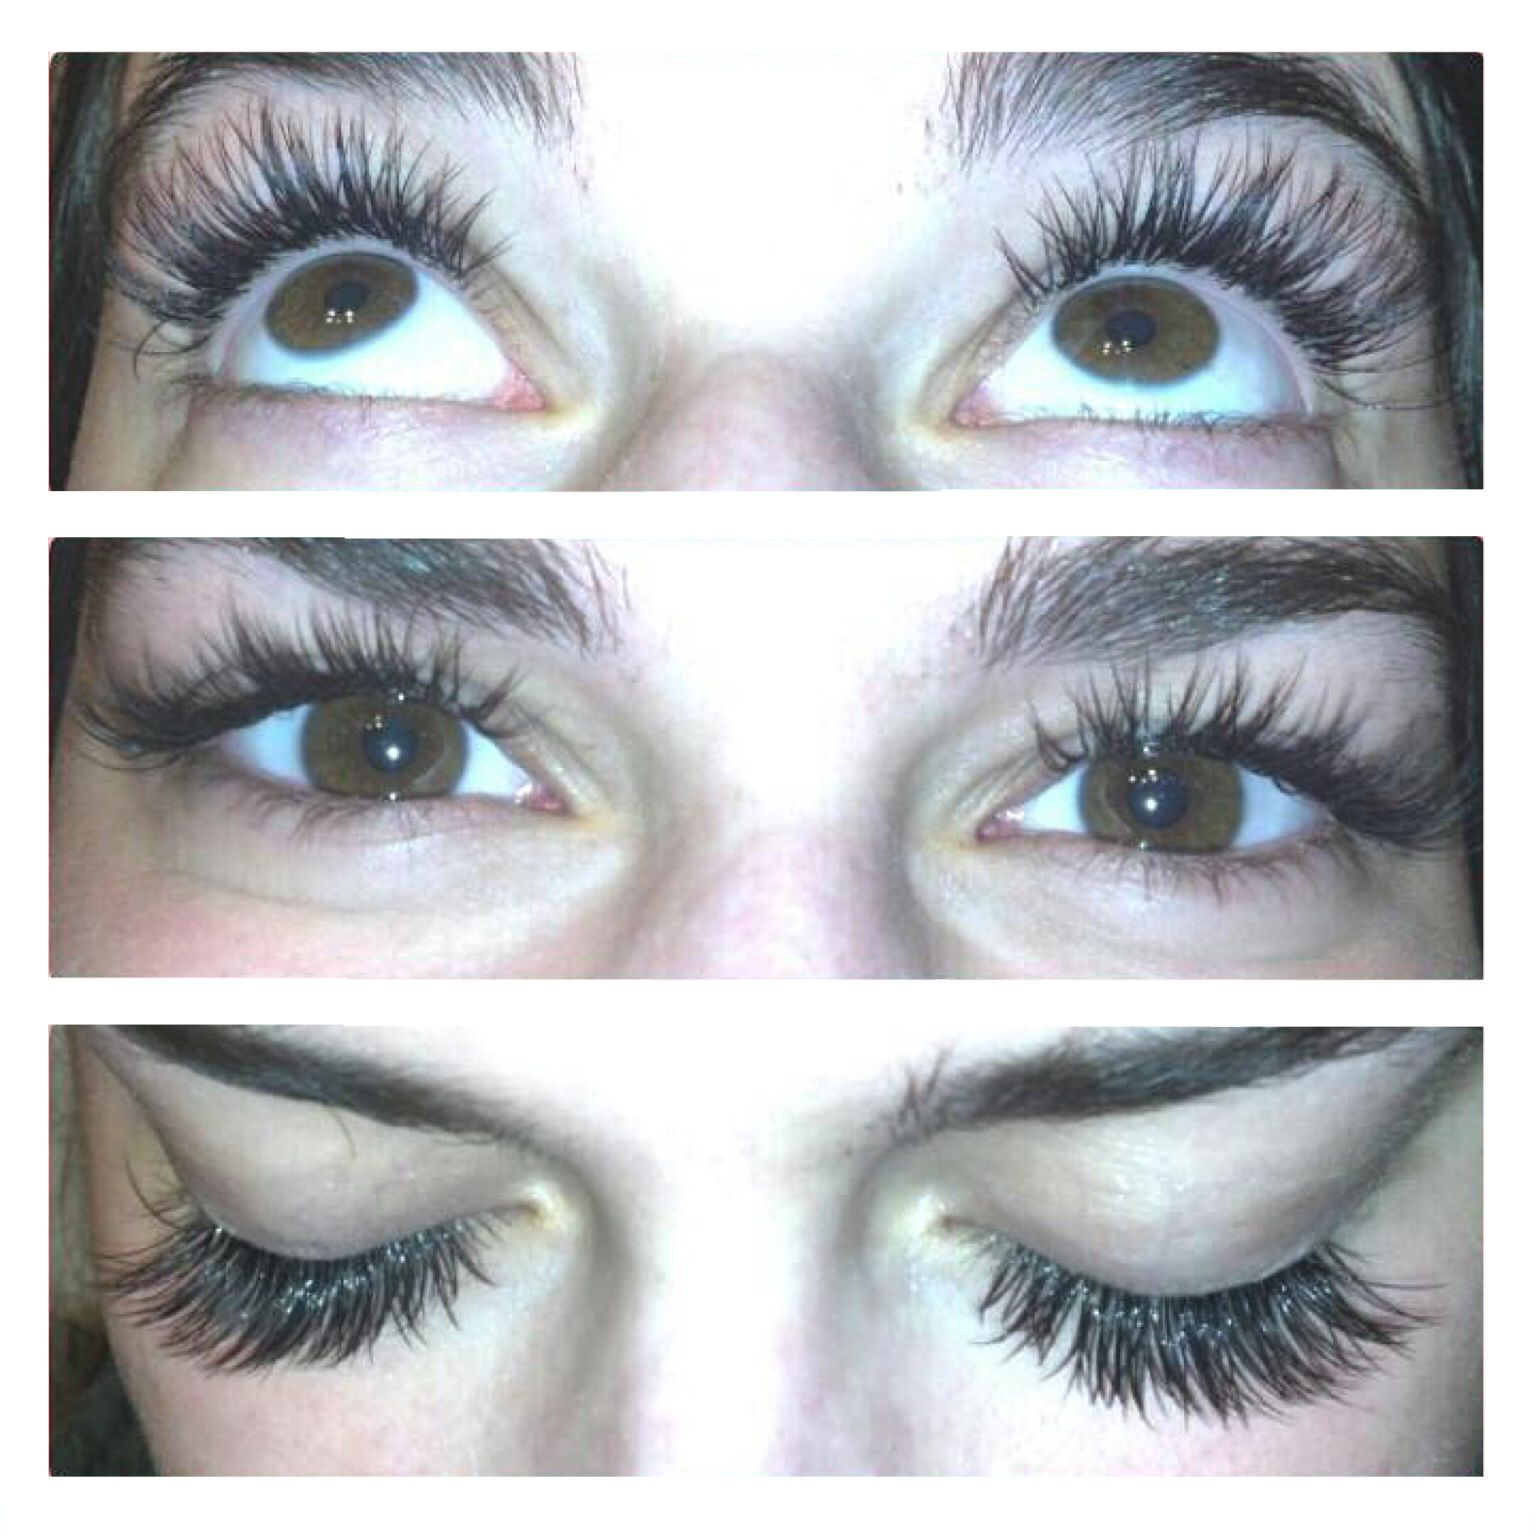 Classic Lash Extensions done by Morgan McGrath at Ida Jane. Book at Idajane.co  Or learn from Morgan and get certified in Lash Extensions!